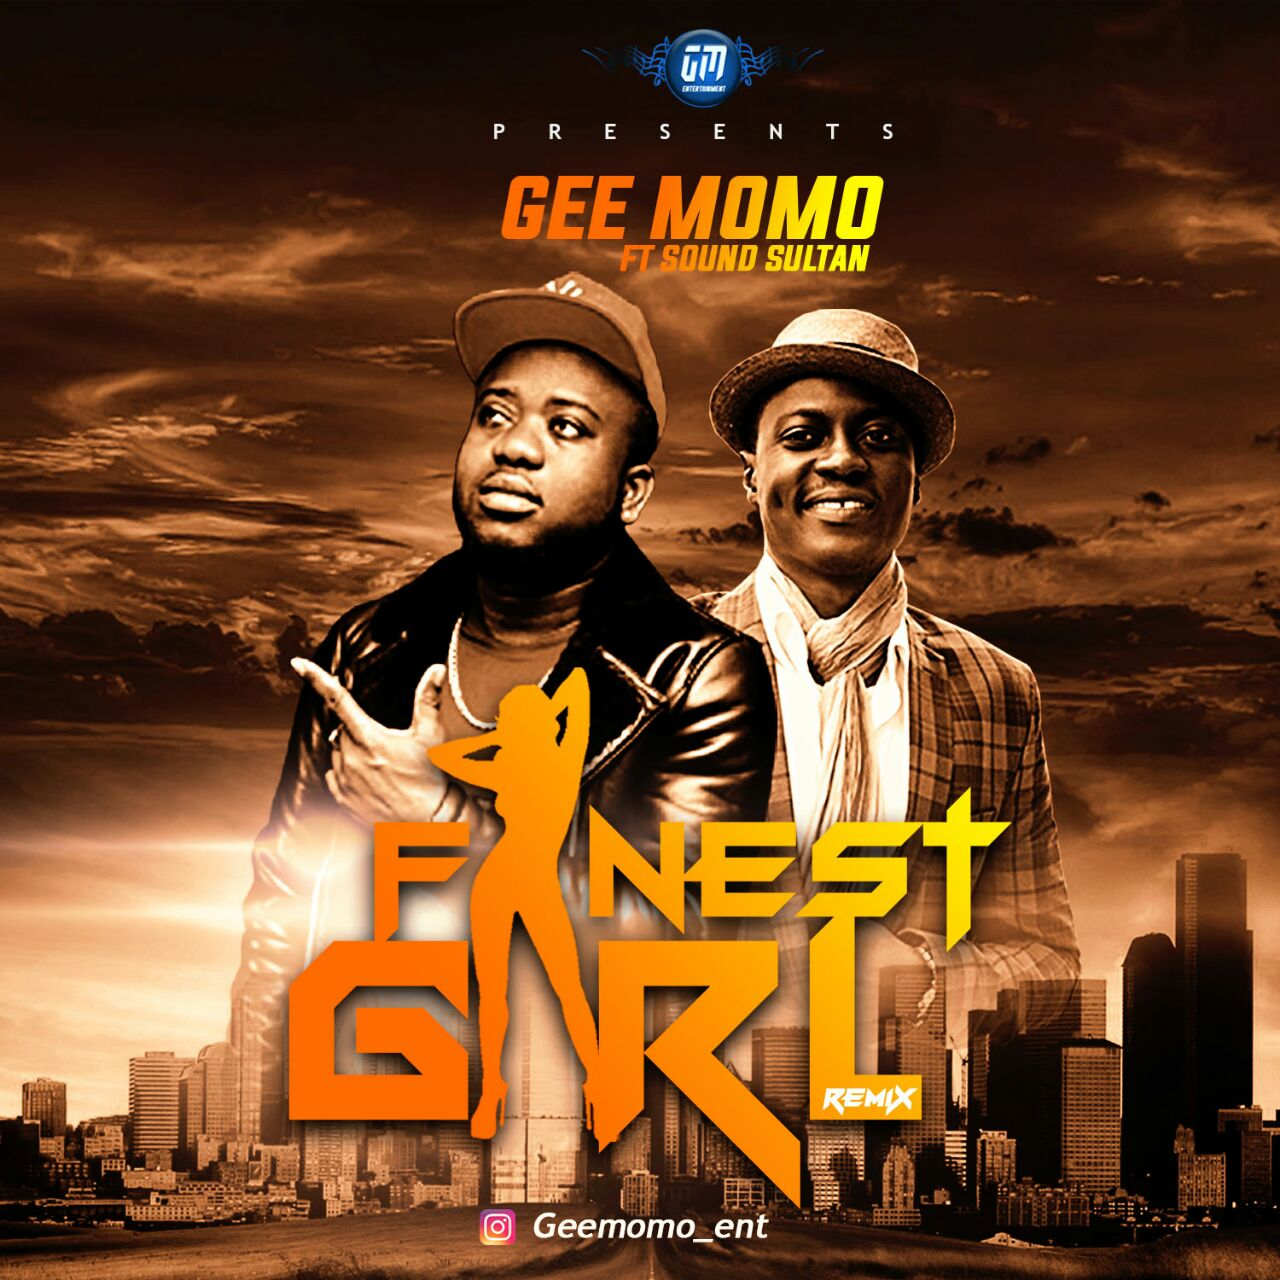 VIDEO: Gee Momo ft. Sound Sultan – Finest Girl (Remix)